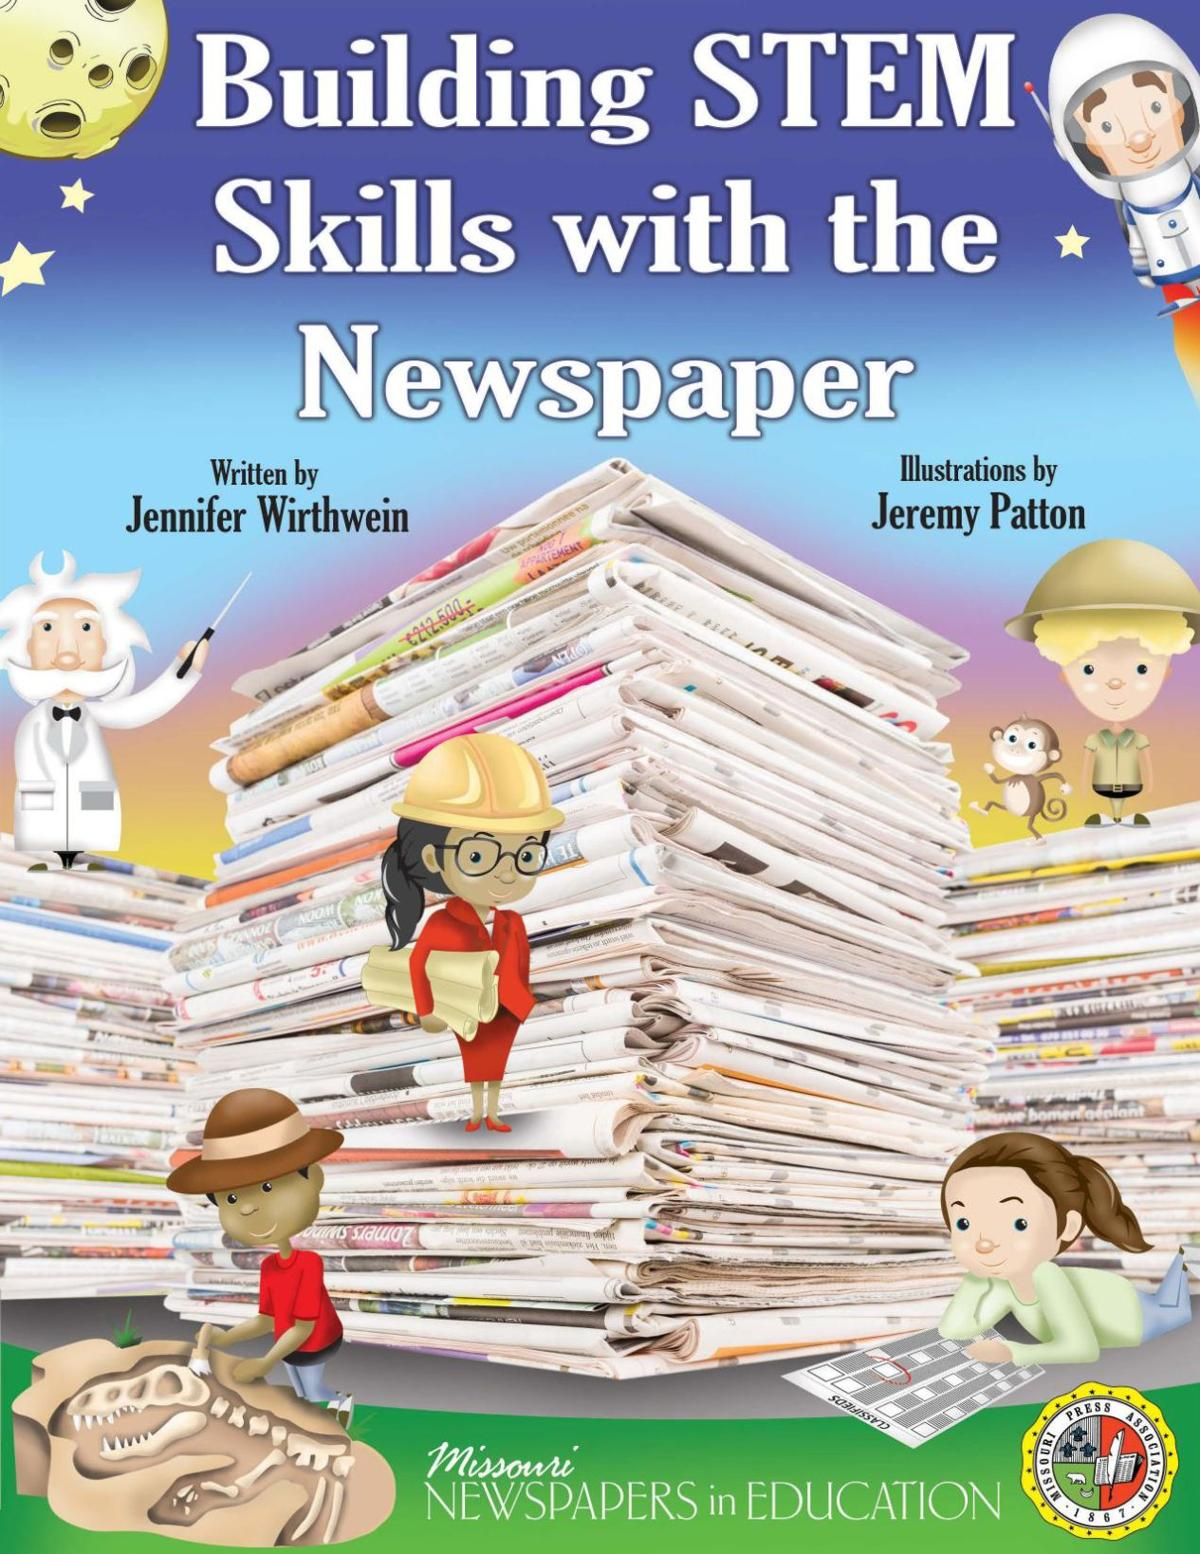 Building S.T.E.M. Skills with the Newspaper